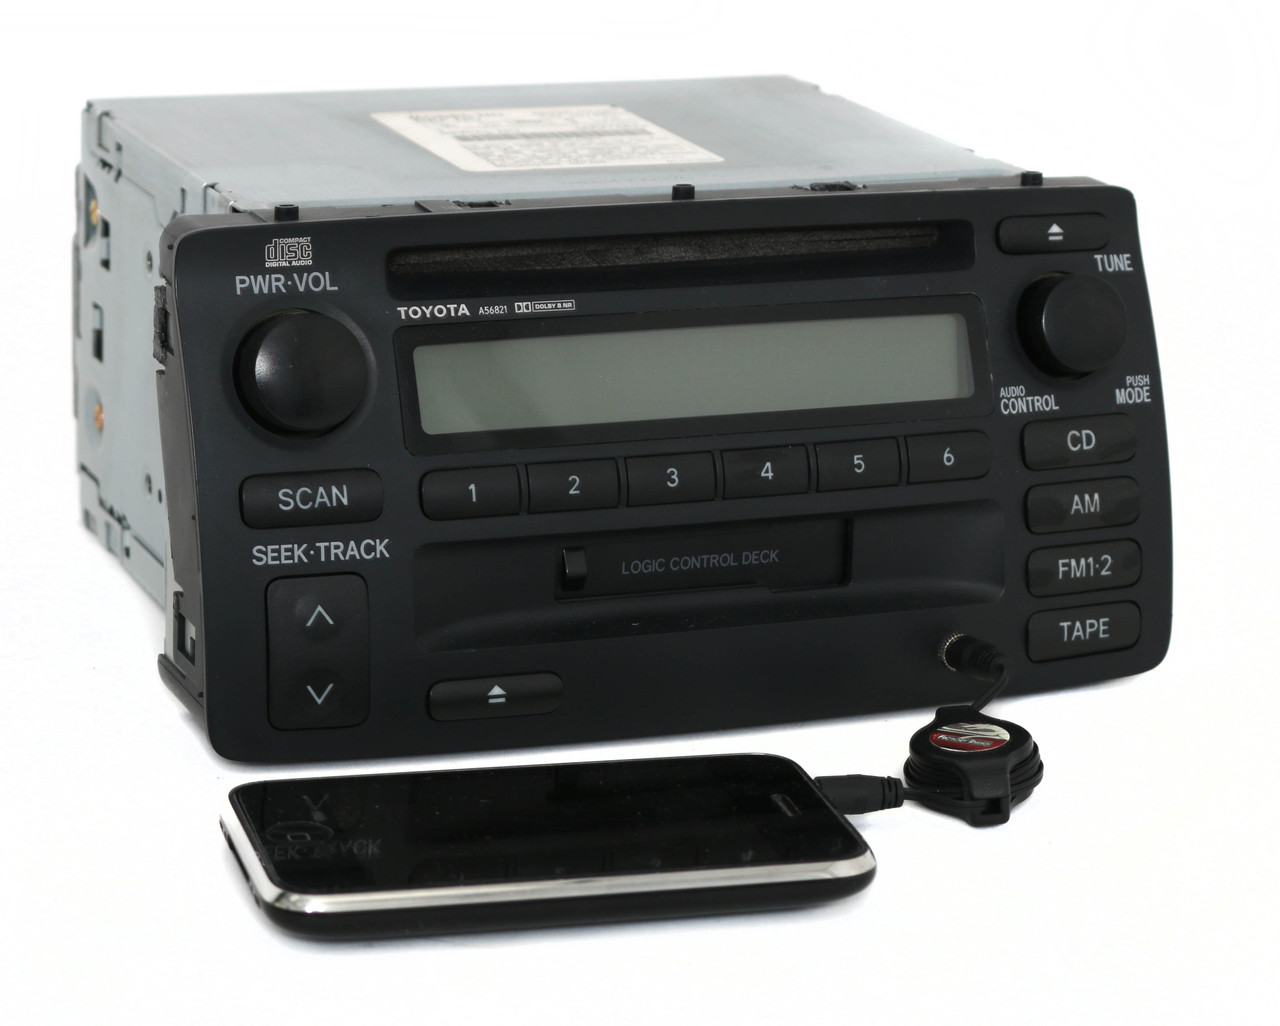 03 04 toyota corolla radio am fm cd cassette w aux input. Black Bedroom Furniture Sets. Home Design Ideas